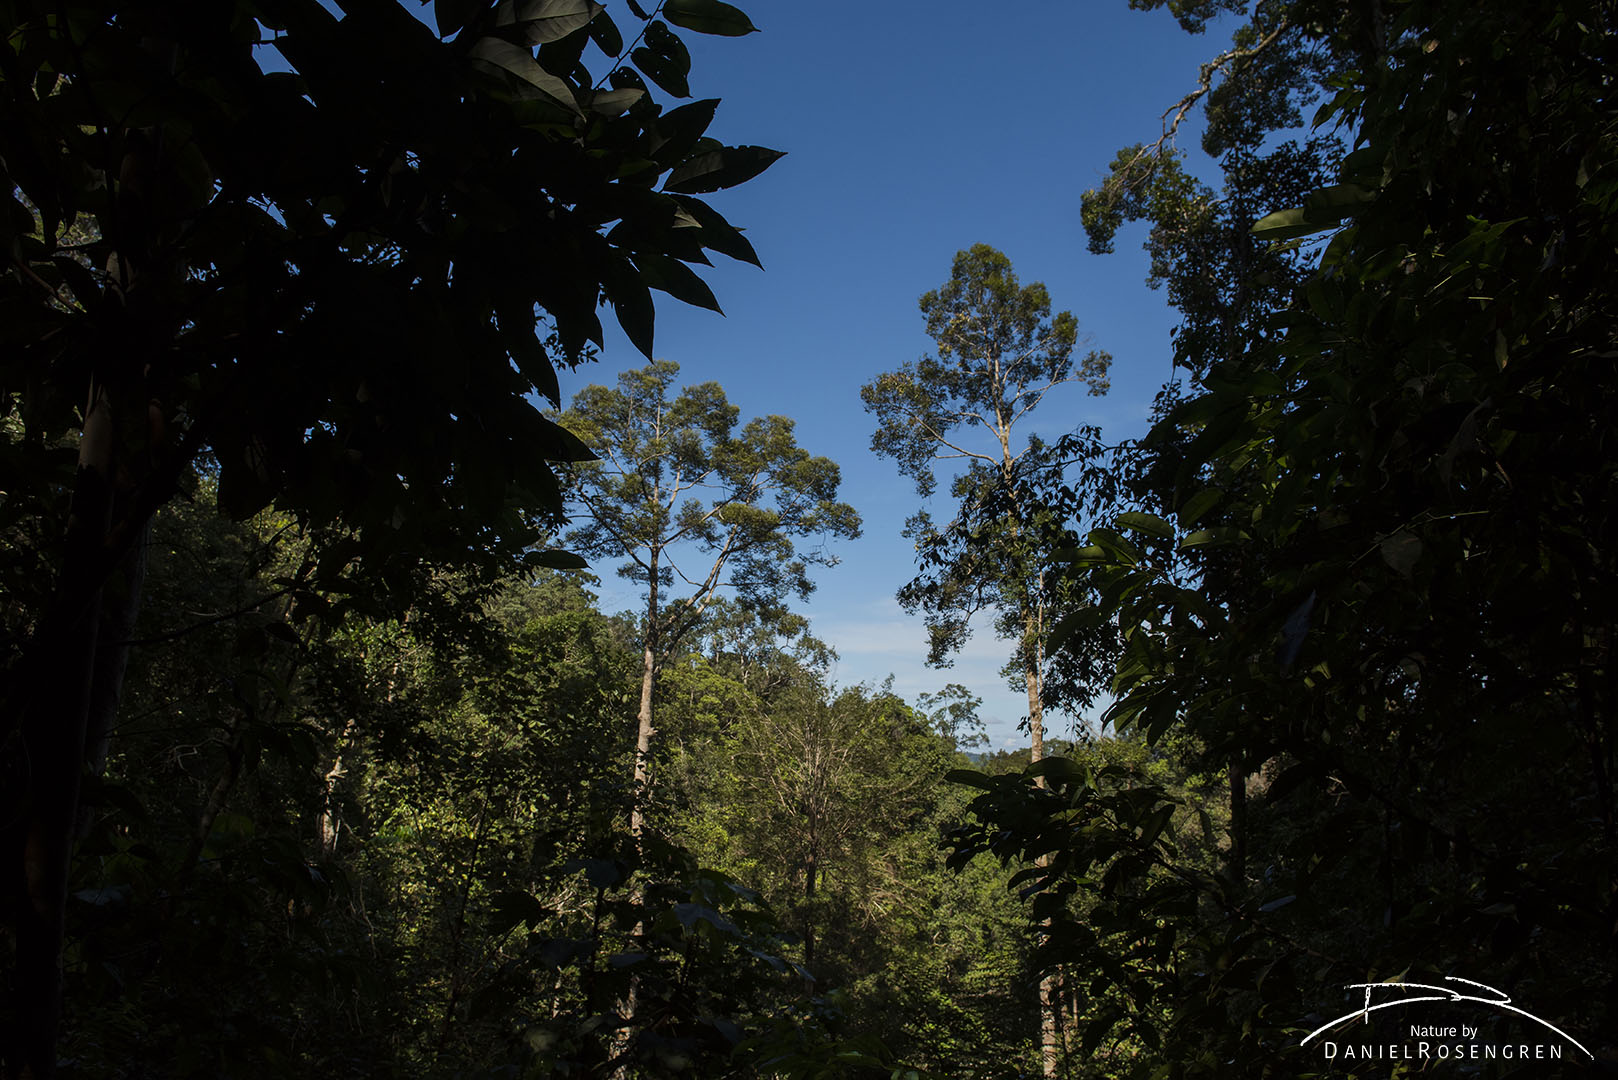 The rainforests of Bukit Tigapuluh, Sumatra. © Daniel Rosengren